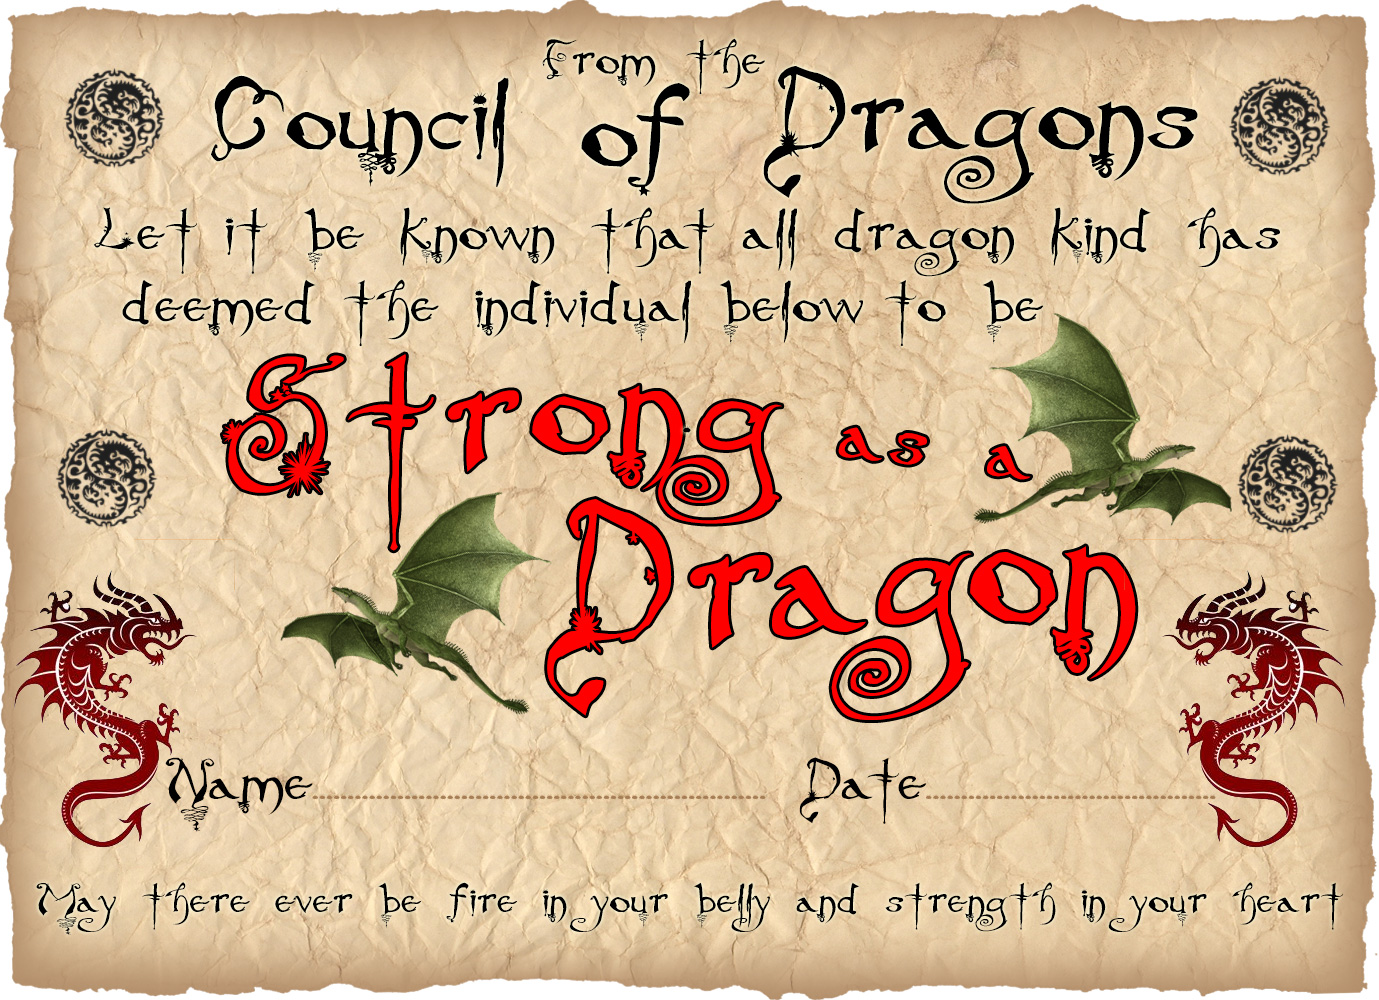 Printable children's award certificate for being as strong as a dragon.